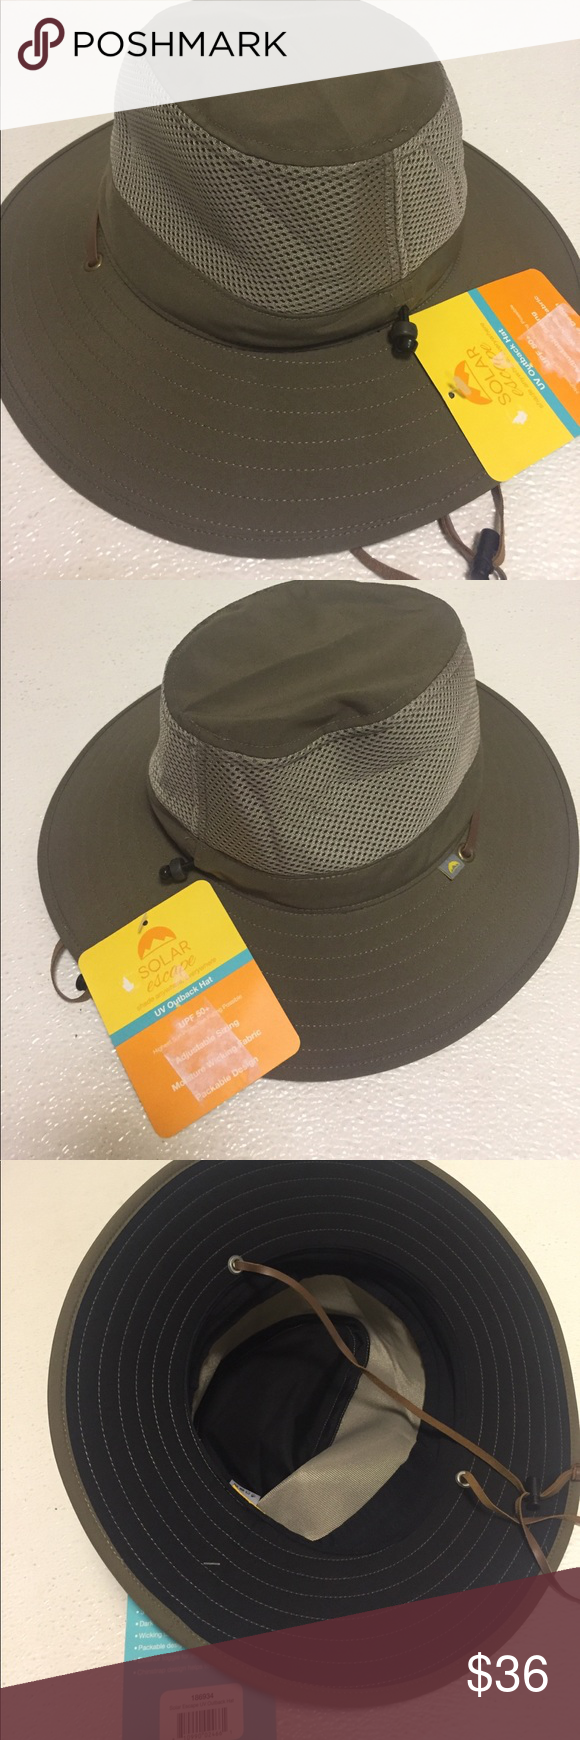 Men s New Solar Escape Outback Hat Olive one size Solar Escape Outback  Men s UV Protection Hat 0399c3961f30